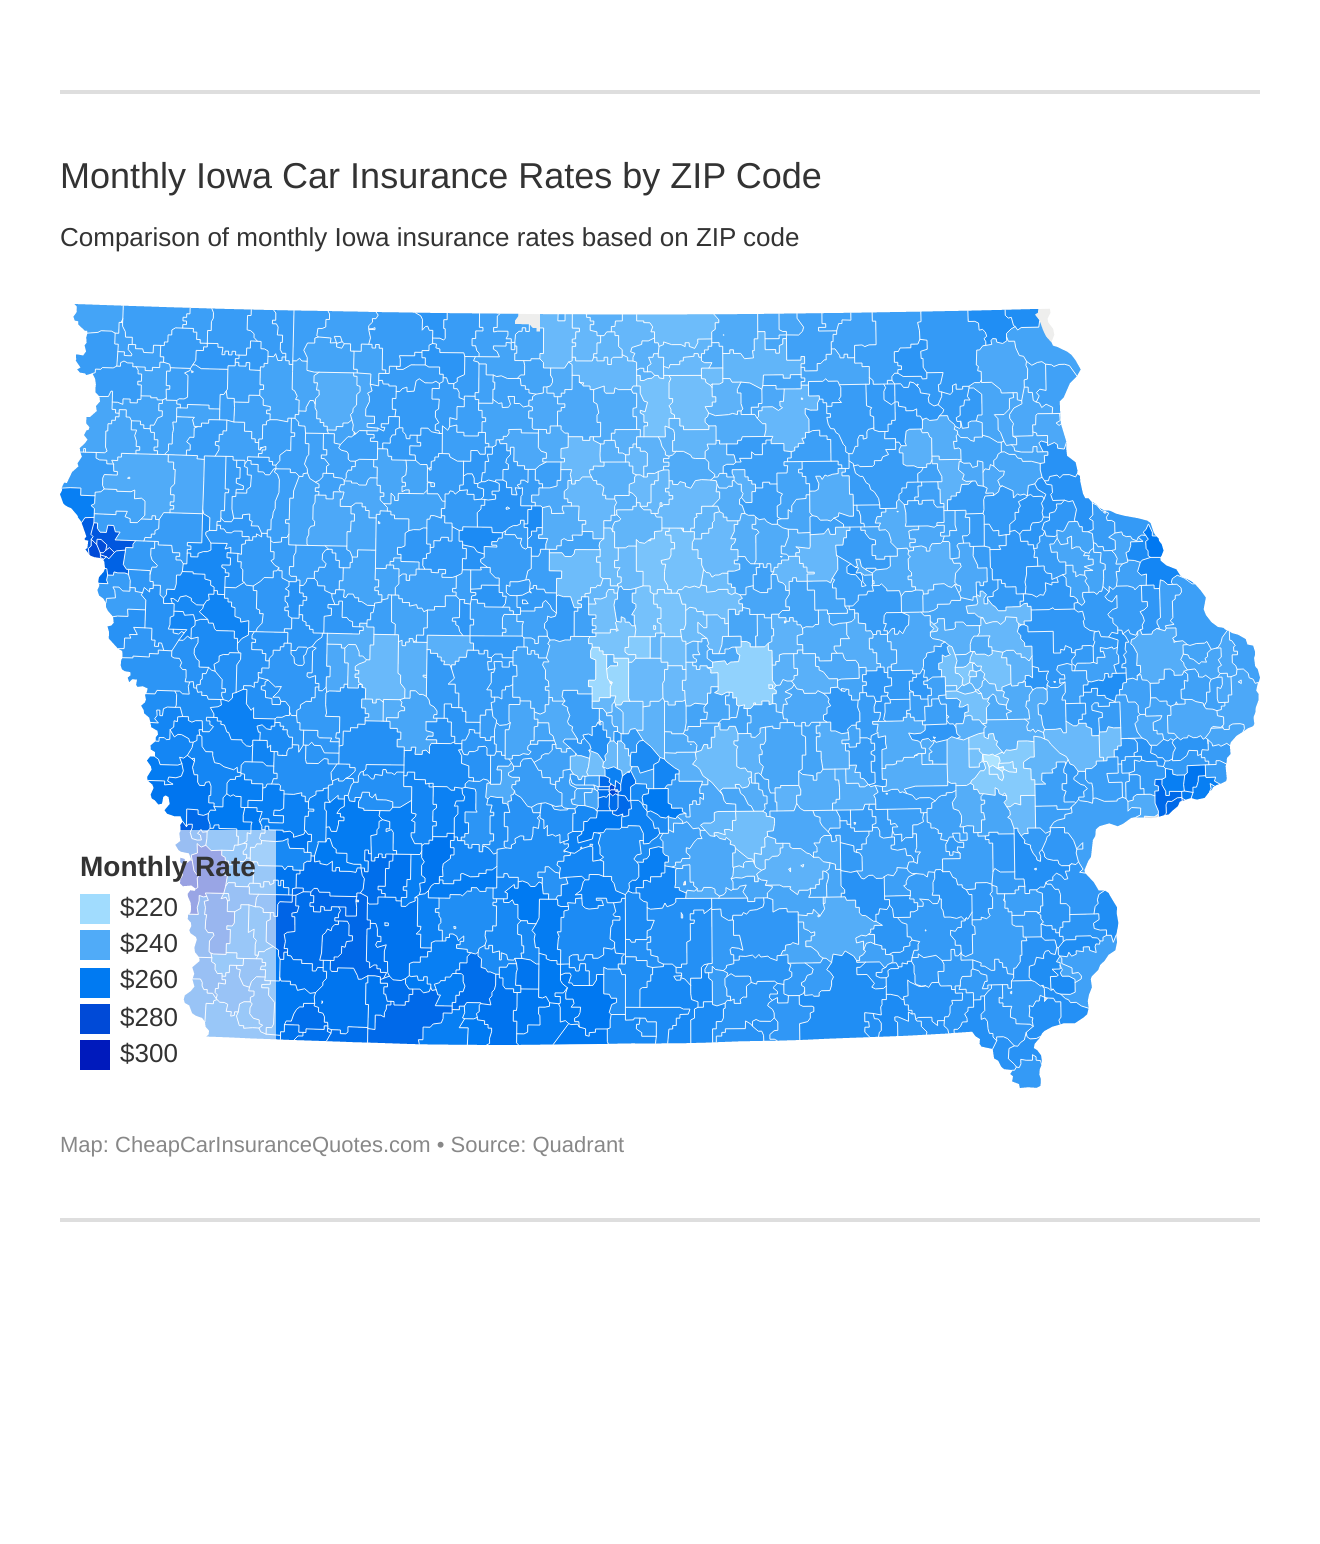 Monthly Iowa Car Insurance Rates by ZIP Code